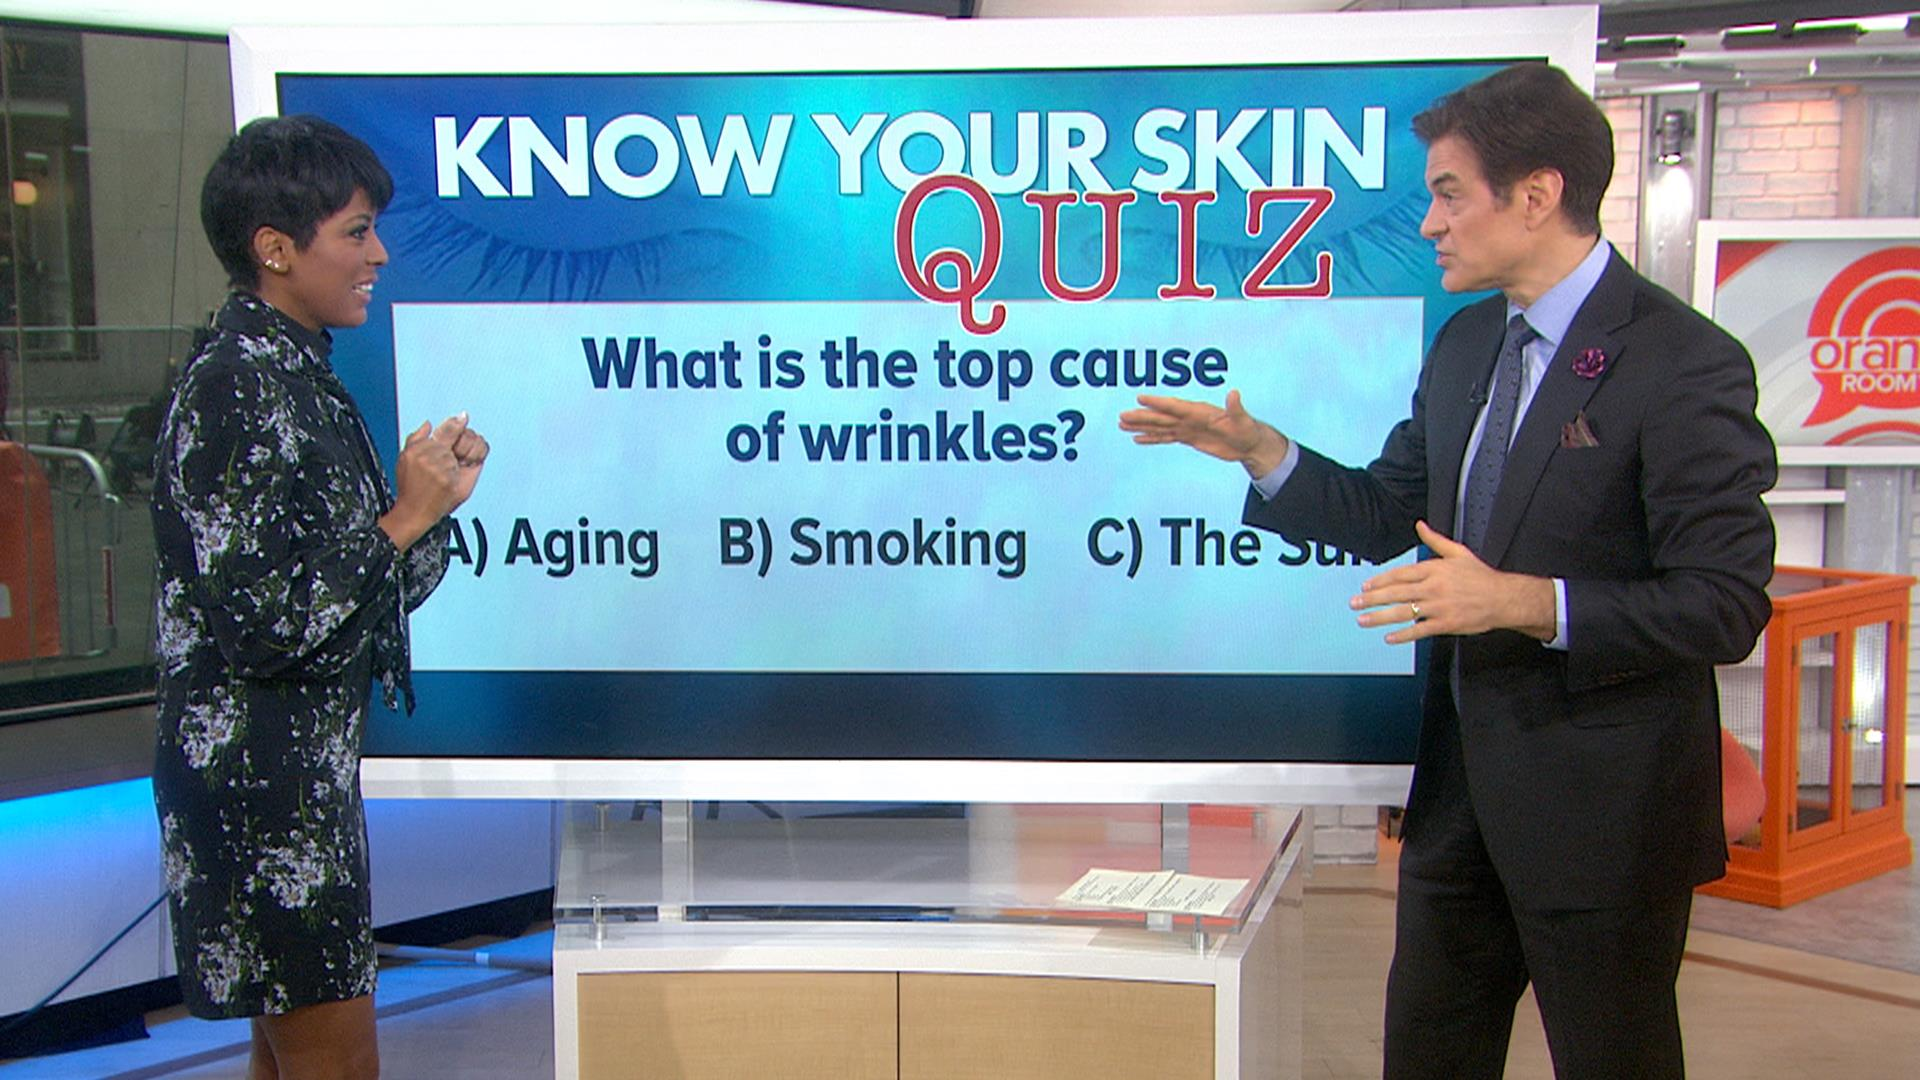 Reversing Wrinkles Dr Oz Reveals His Anti Aging Skin Care Secrets